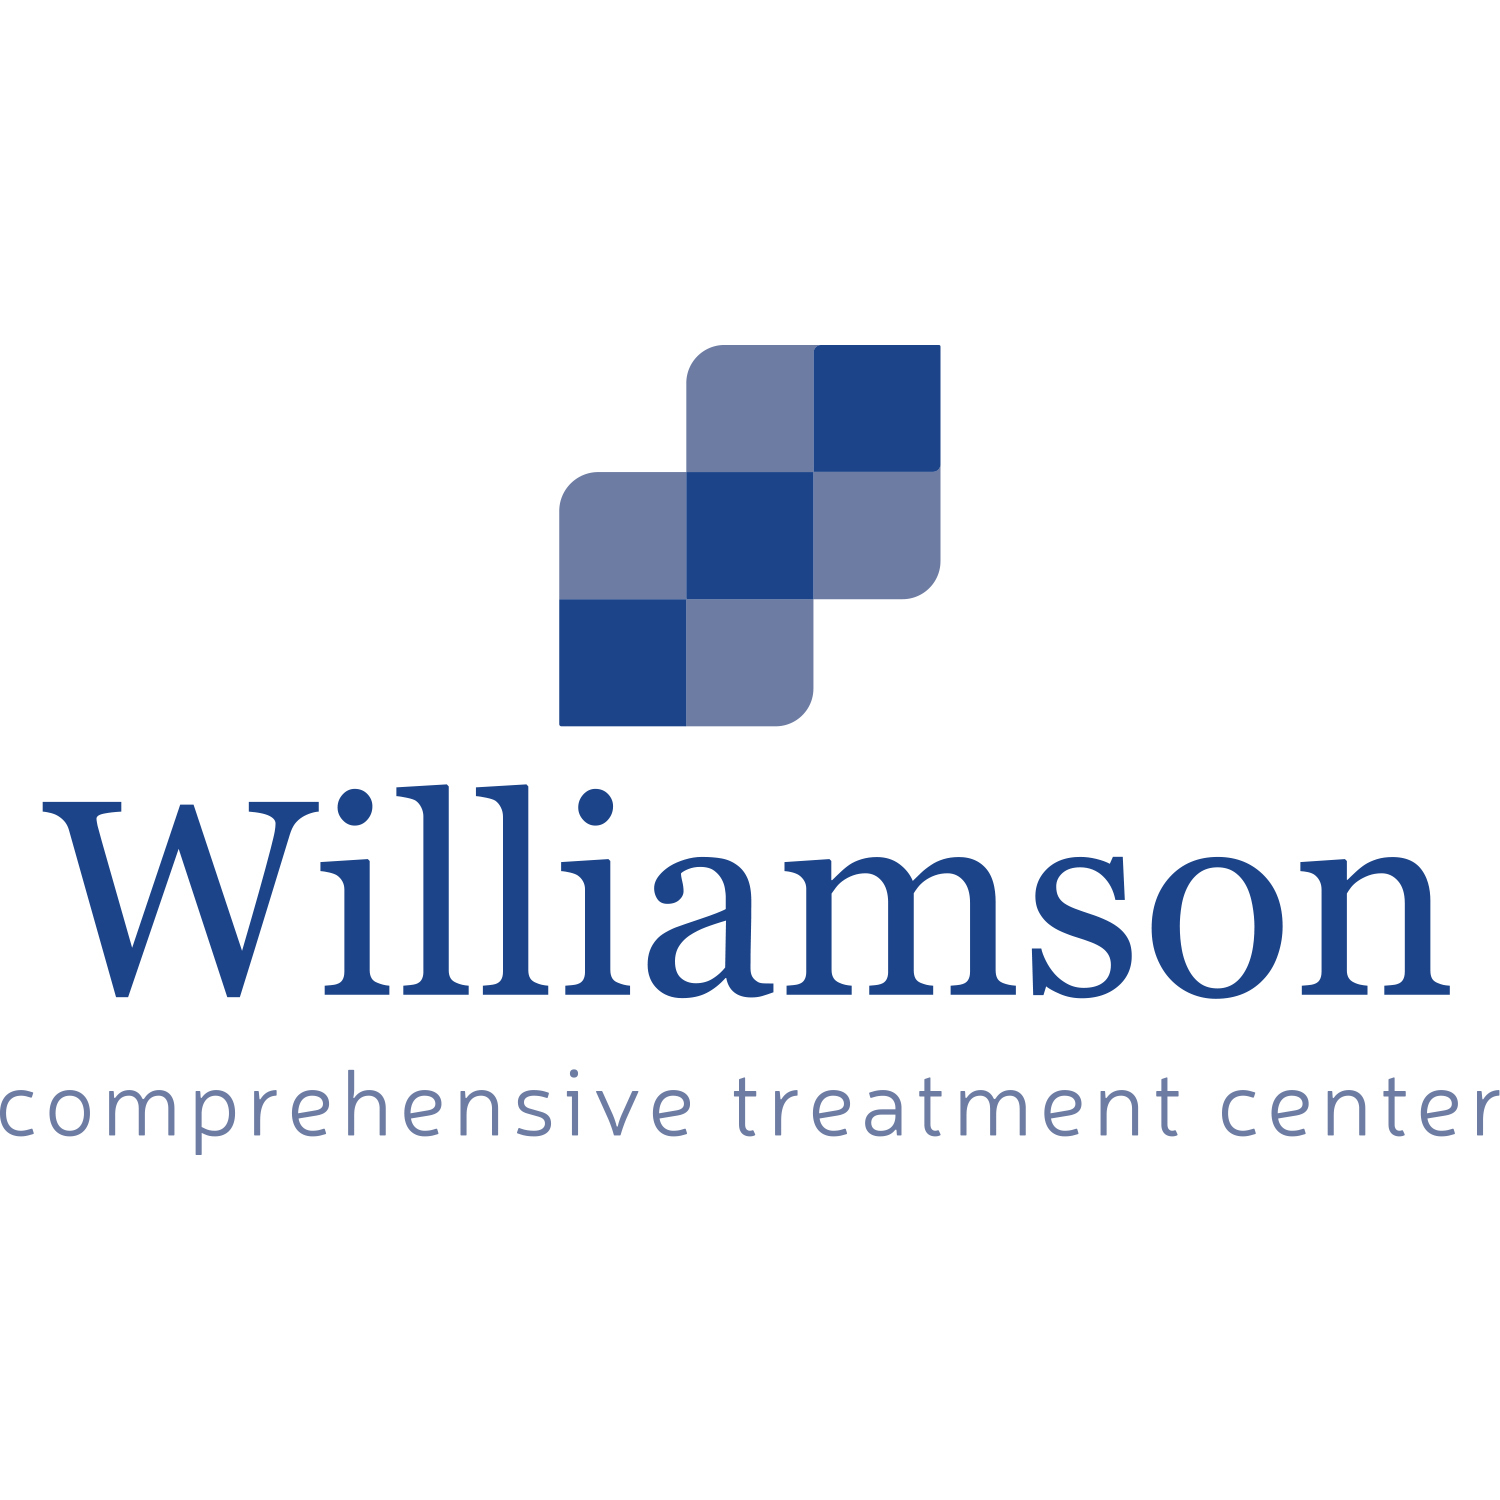 Williamson Comprehensive Treatment Center